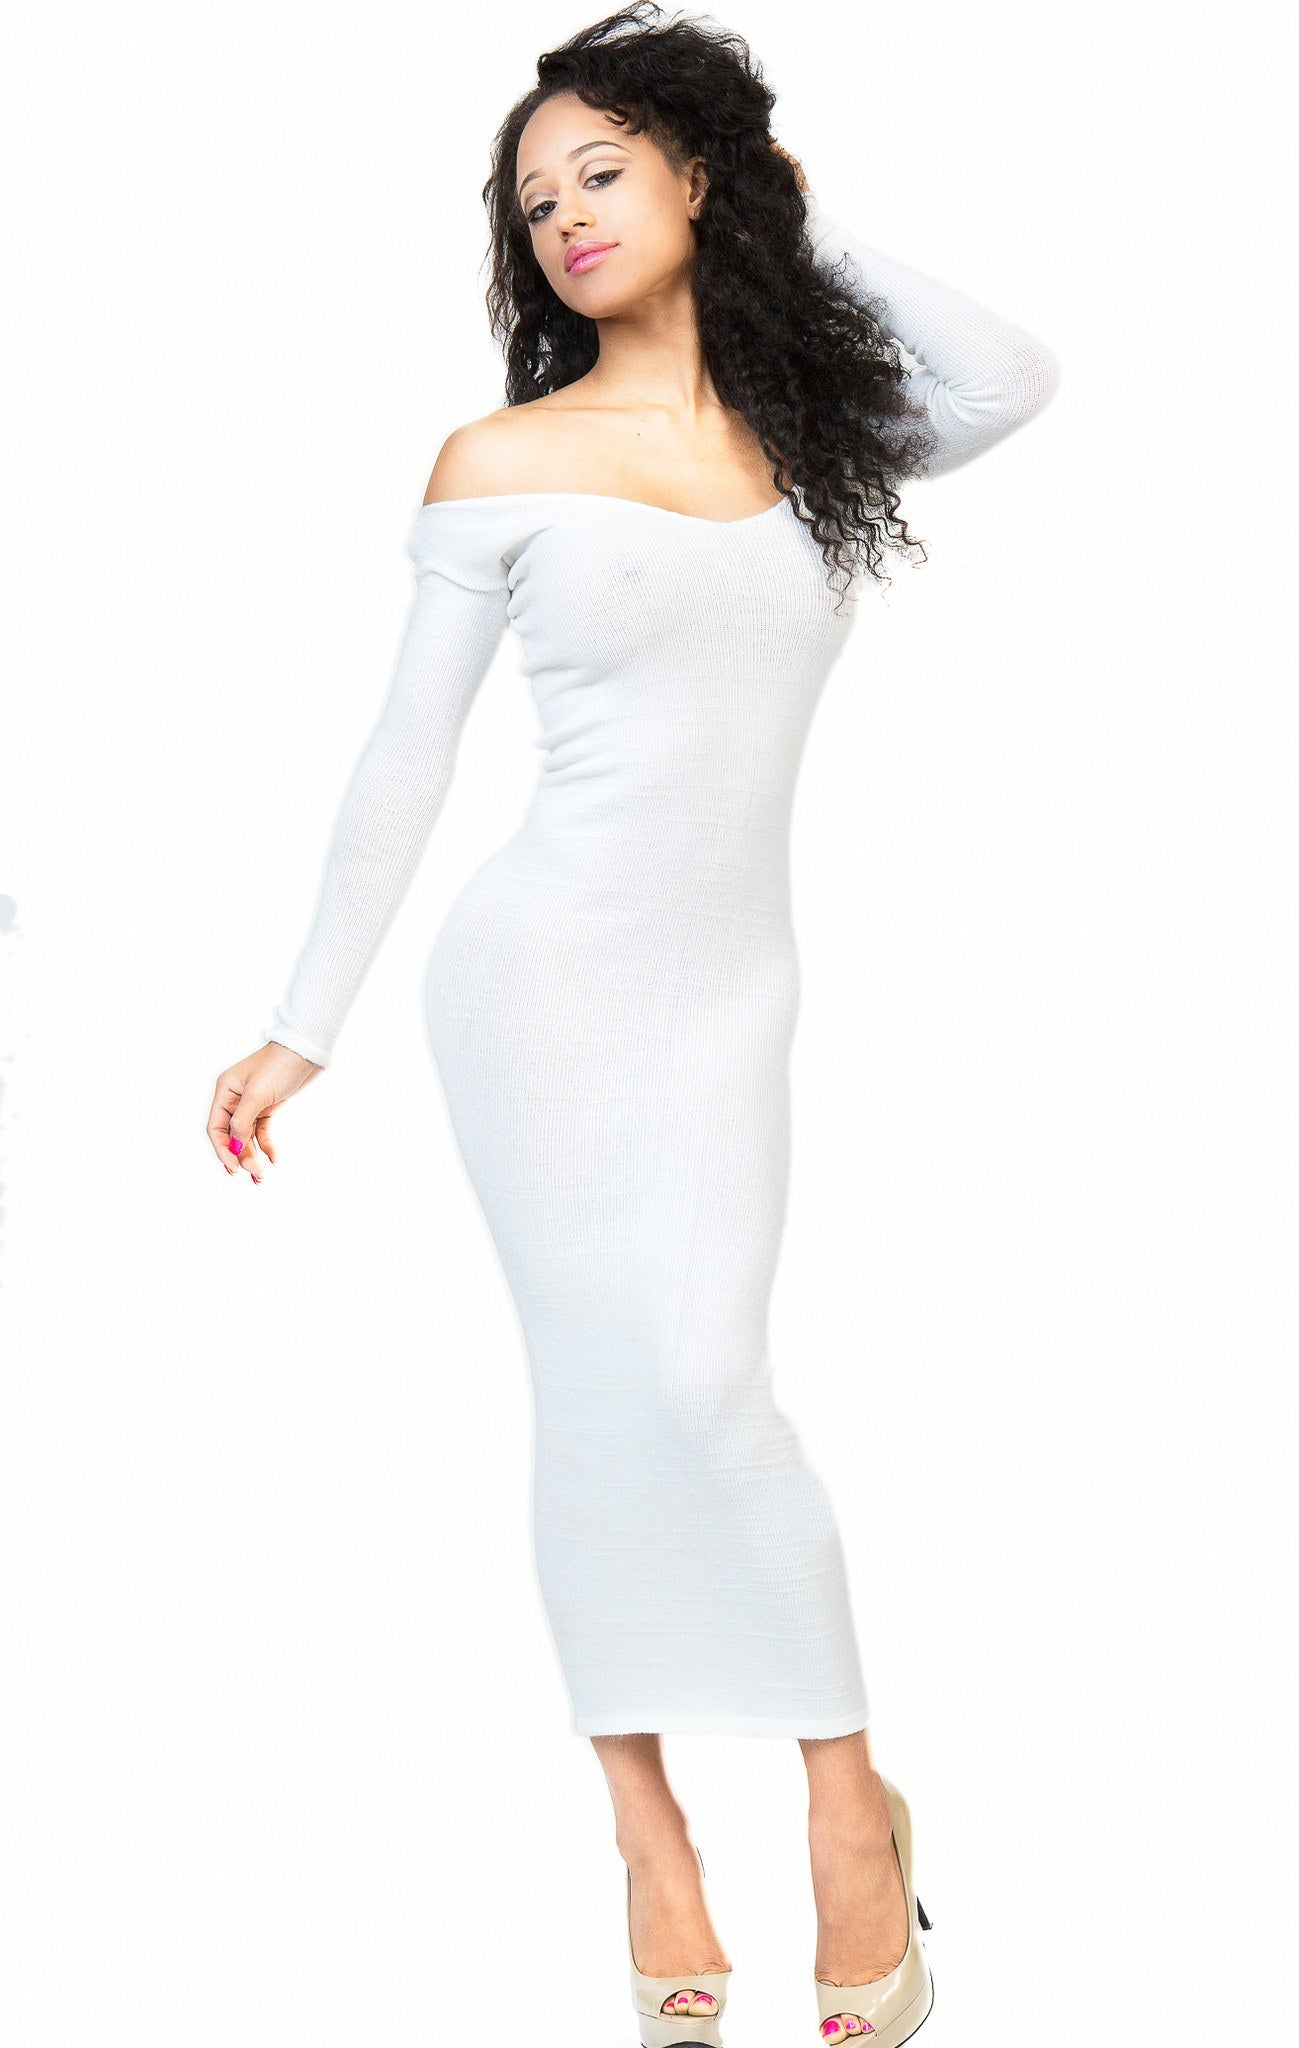 Elegant Ankle Length Cocktail Party Dress Stretch Knit KD dance Sexy, Warm Cozy Maxi Dress Made USA @KDdanceNewYork #MadeInUSA - 1